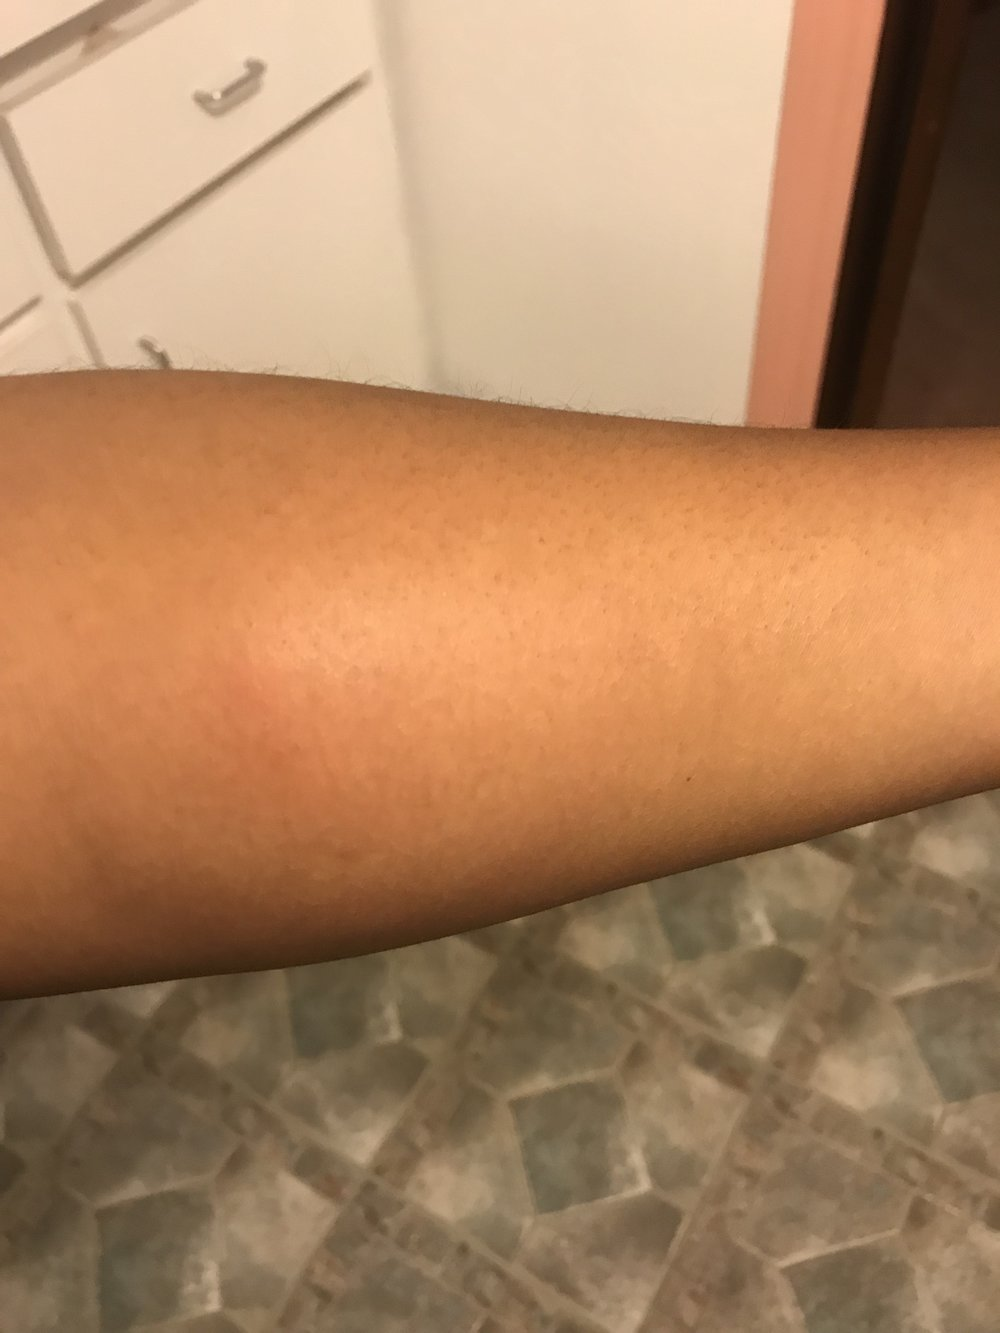 Result from contact with bed bug(s)